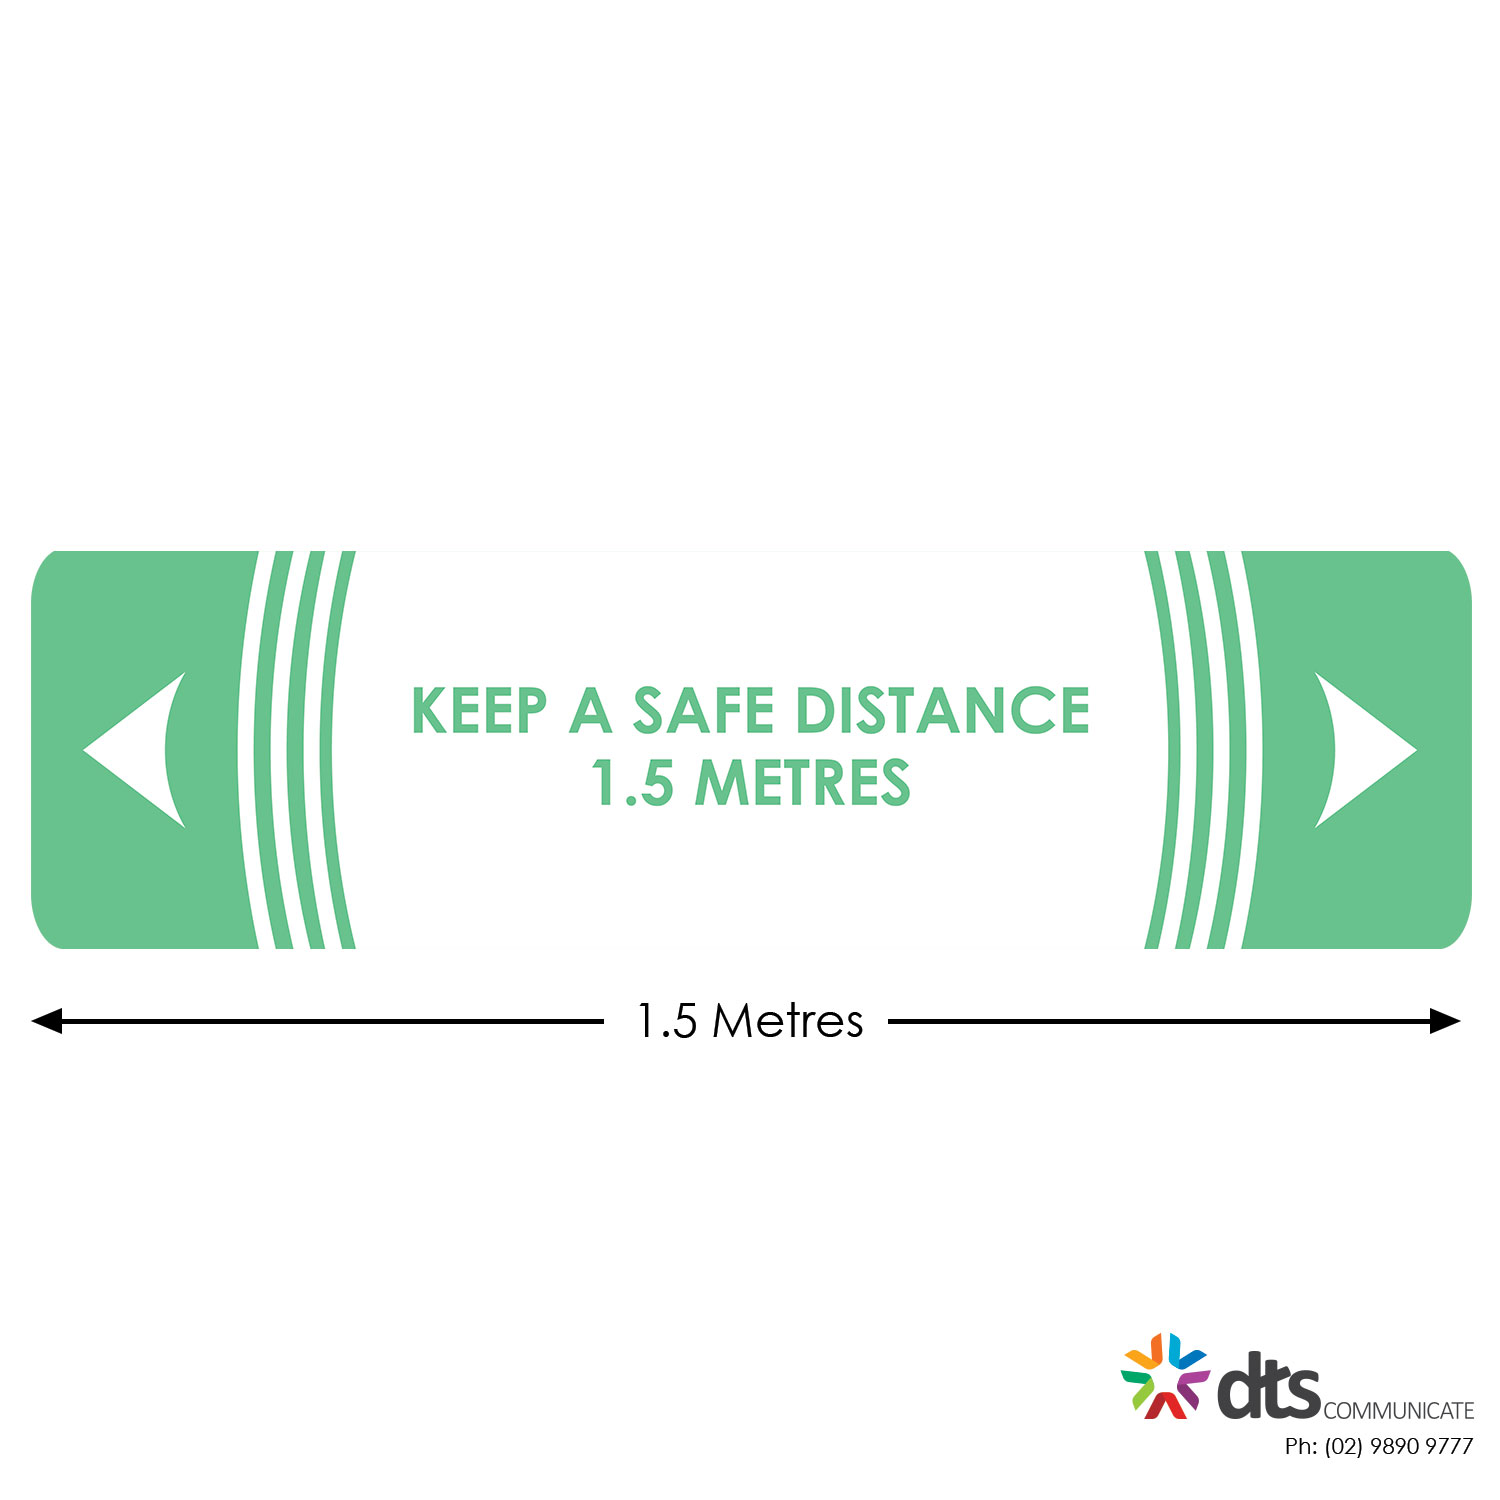 XLART DTS Covid19 Covid Floor Stickers Decals Social Distancing Sydney Melbourne Australia keep a safe distance Style 40